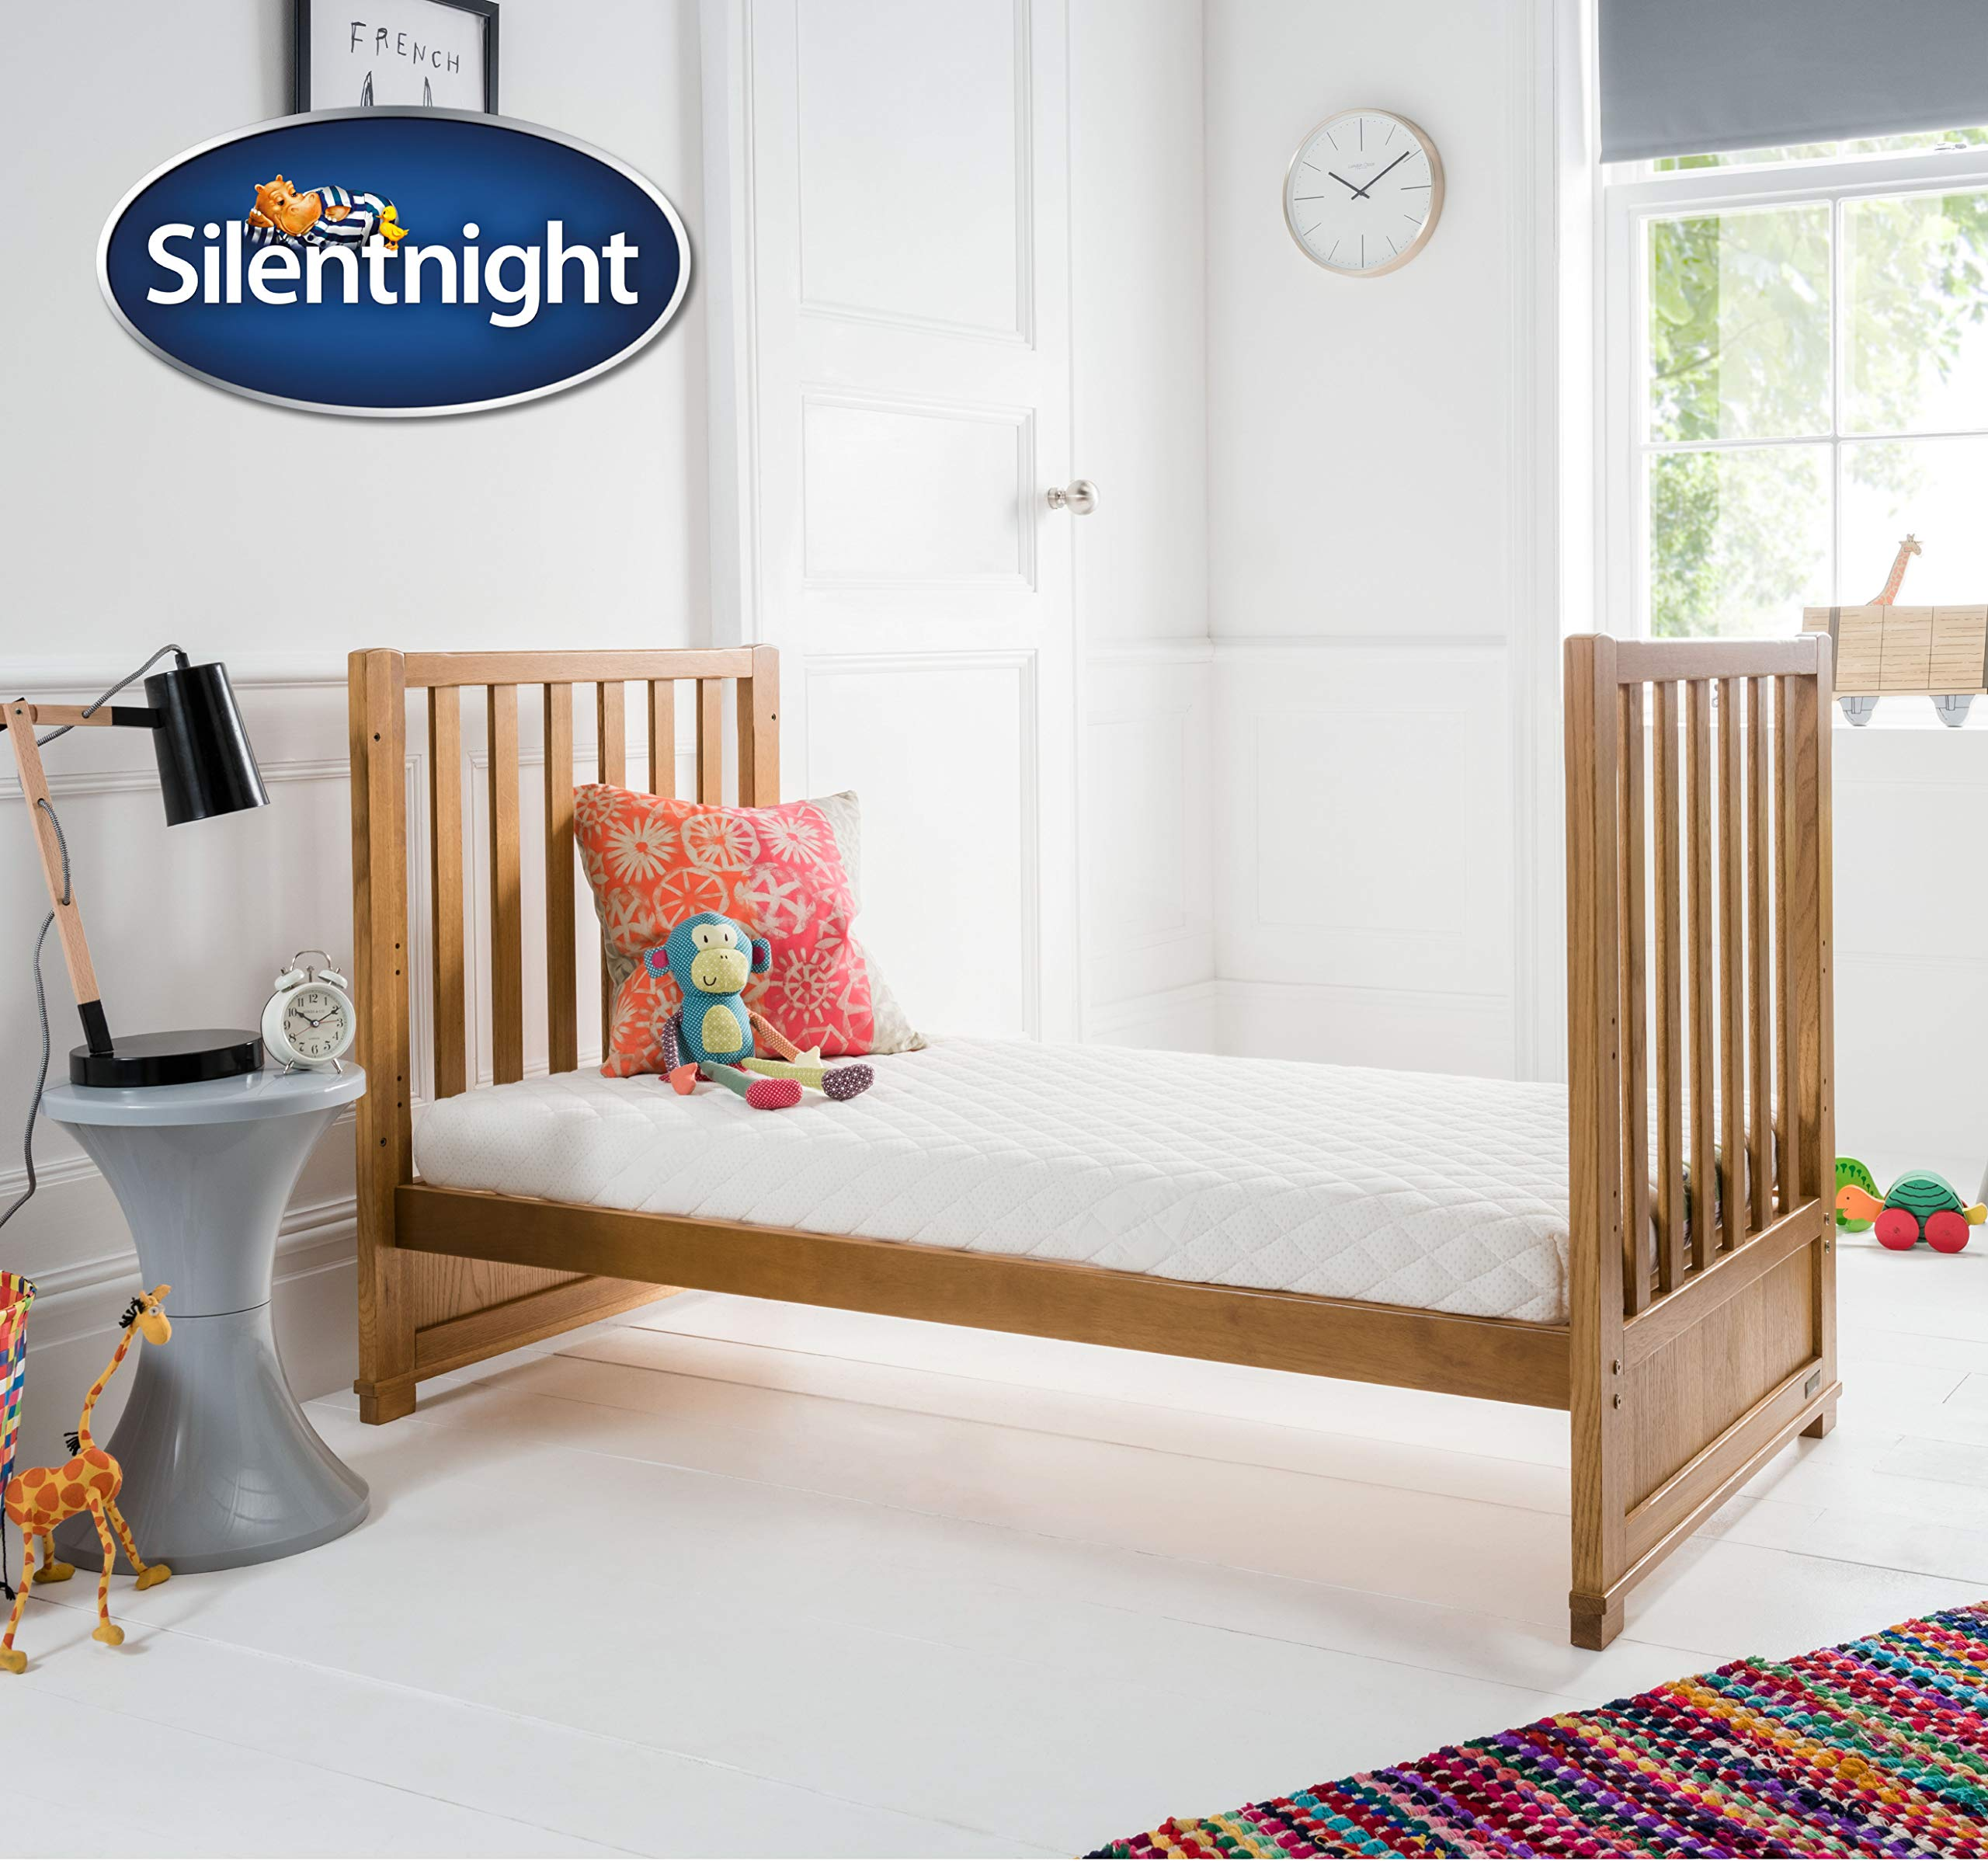 Cot Bed Sheets Fitted 2-Pack 120x60x15 cm to 140x70x15 cm Momcozy Cotton Crib Mattress Sheet Mattress Protector for Baby Toddler Fit Mother Nurture